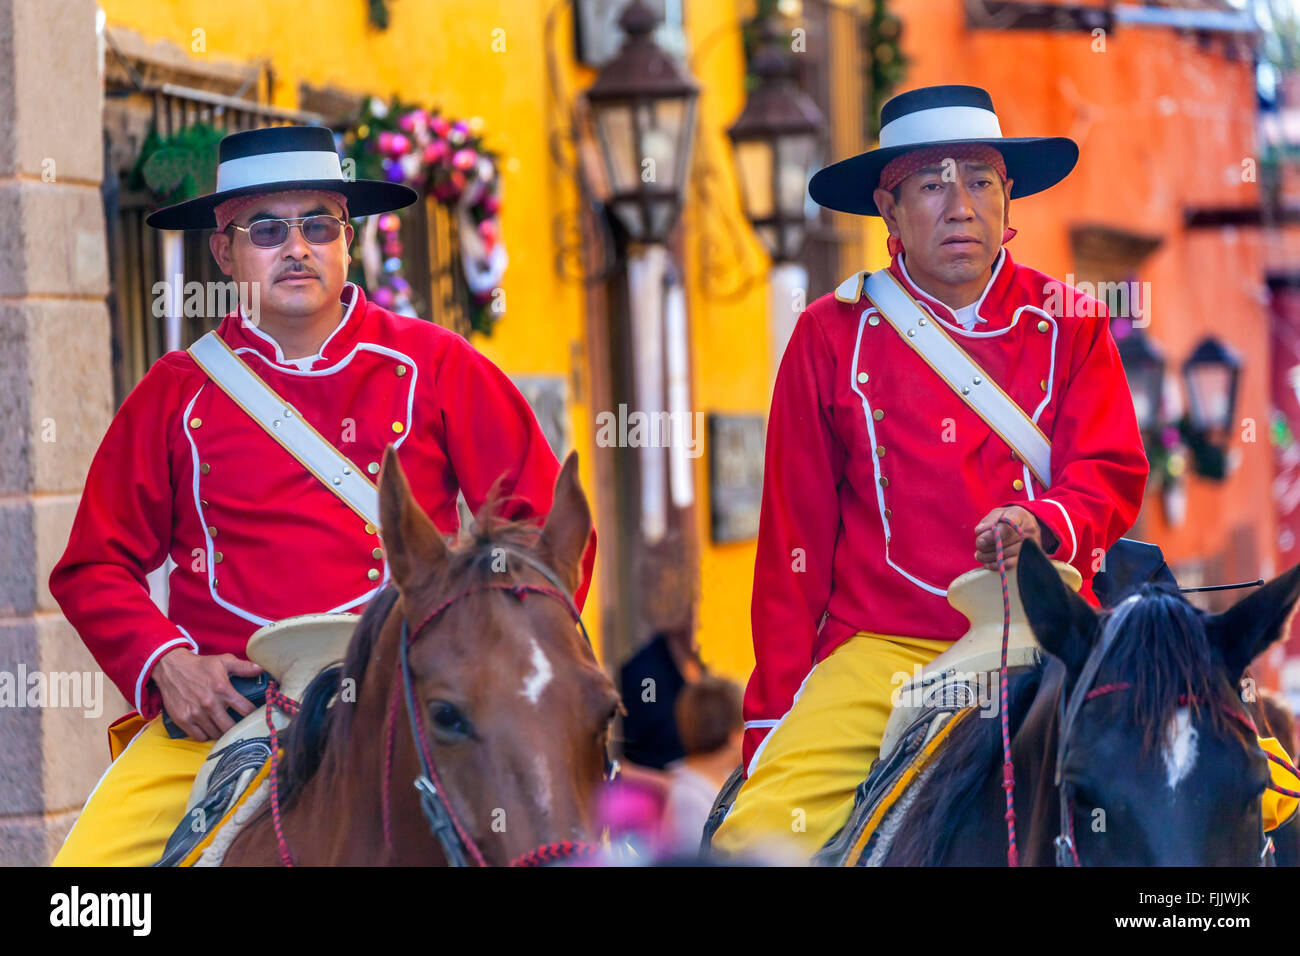 Mounted Police Traditional Uniforms Jardin Town Square San Miguel de Allende Mexico. - Stock Image